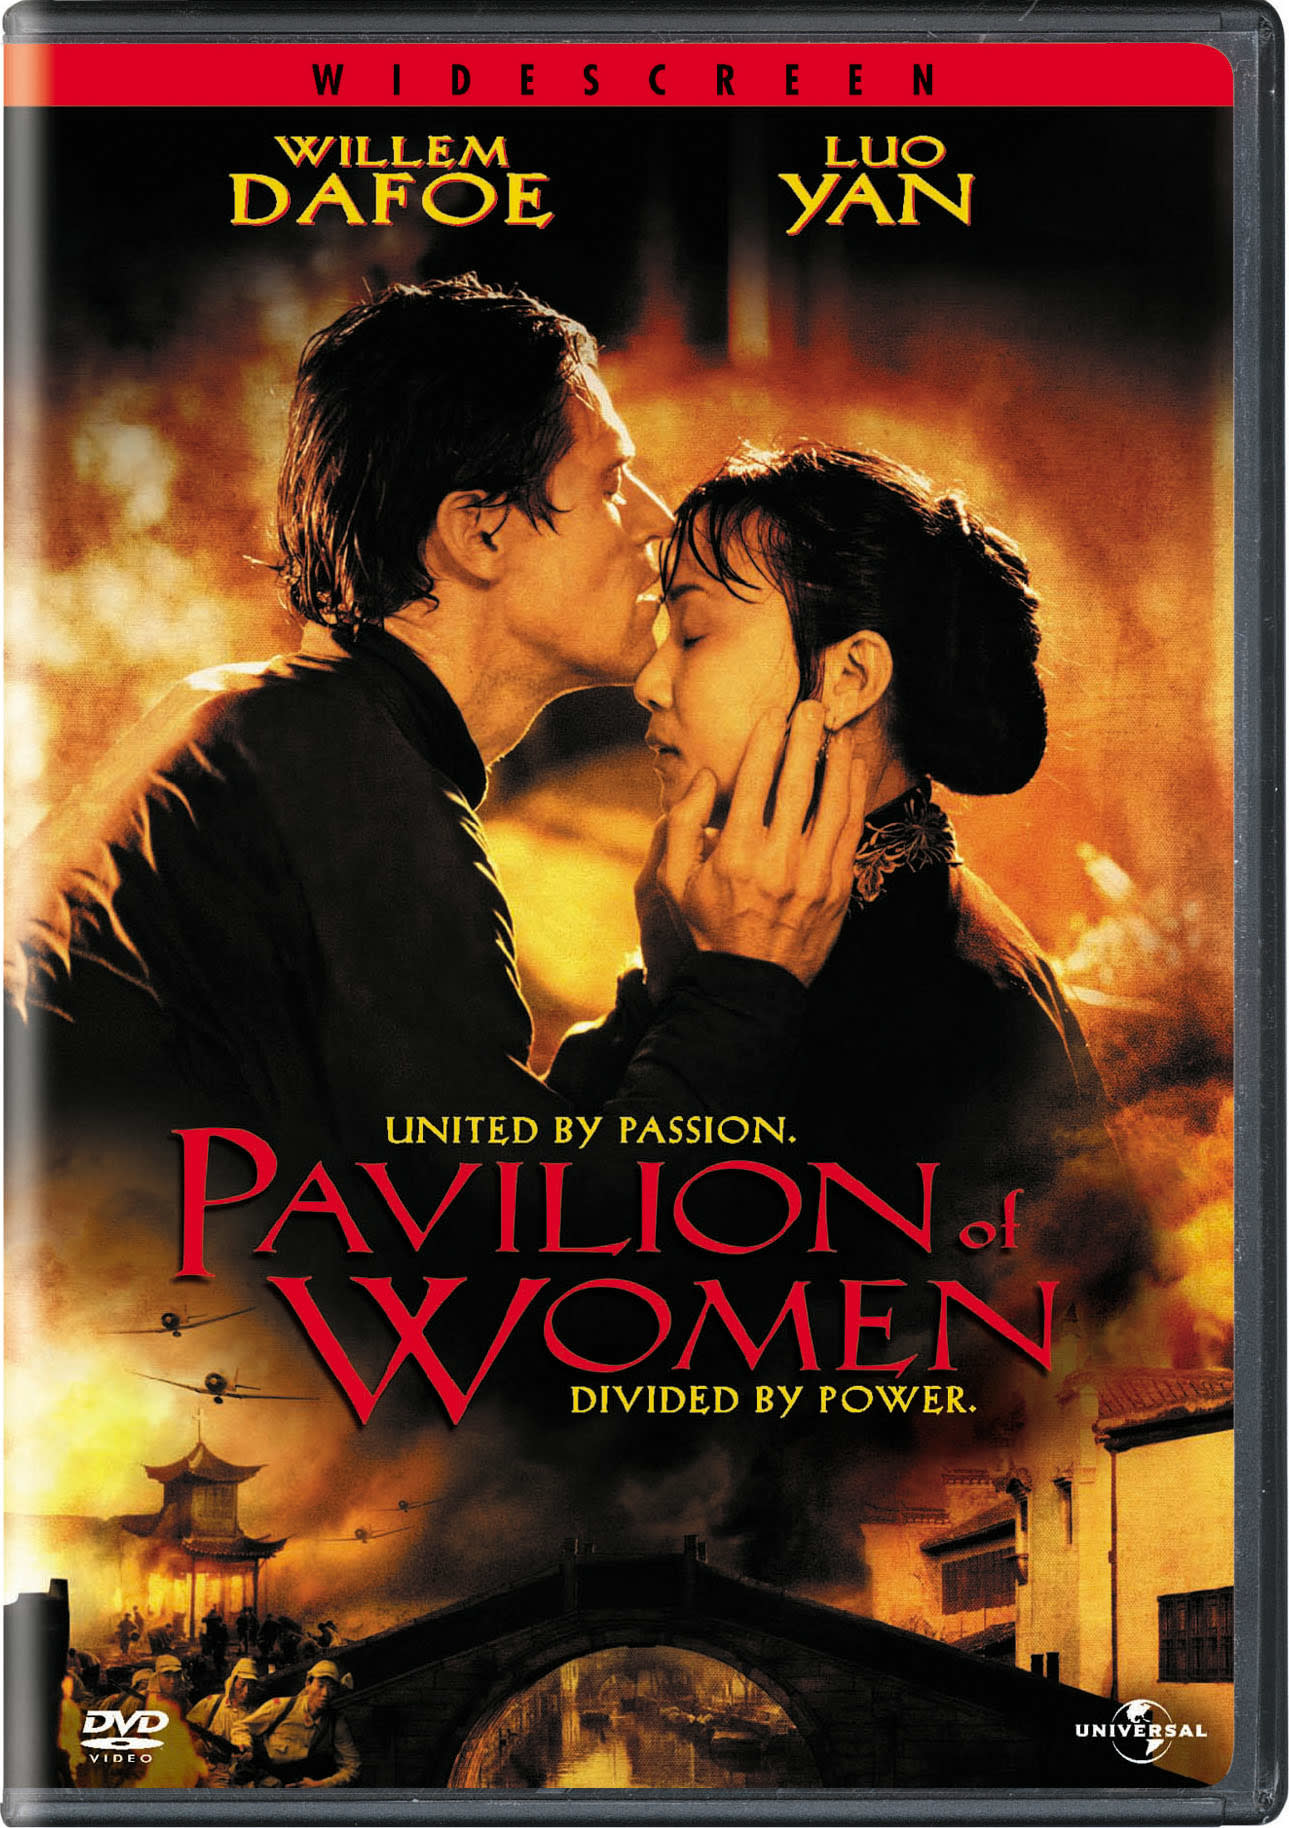 Pavilion of Women [DVD]